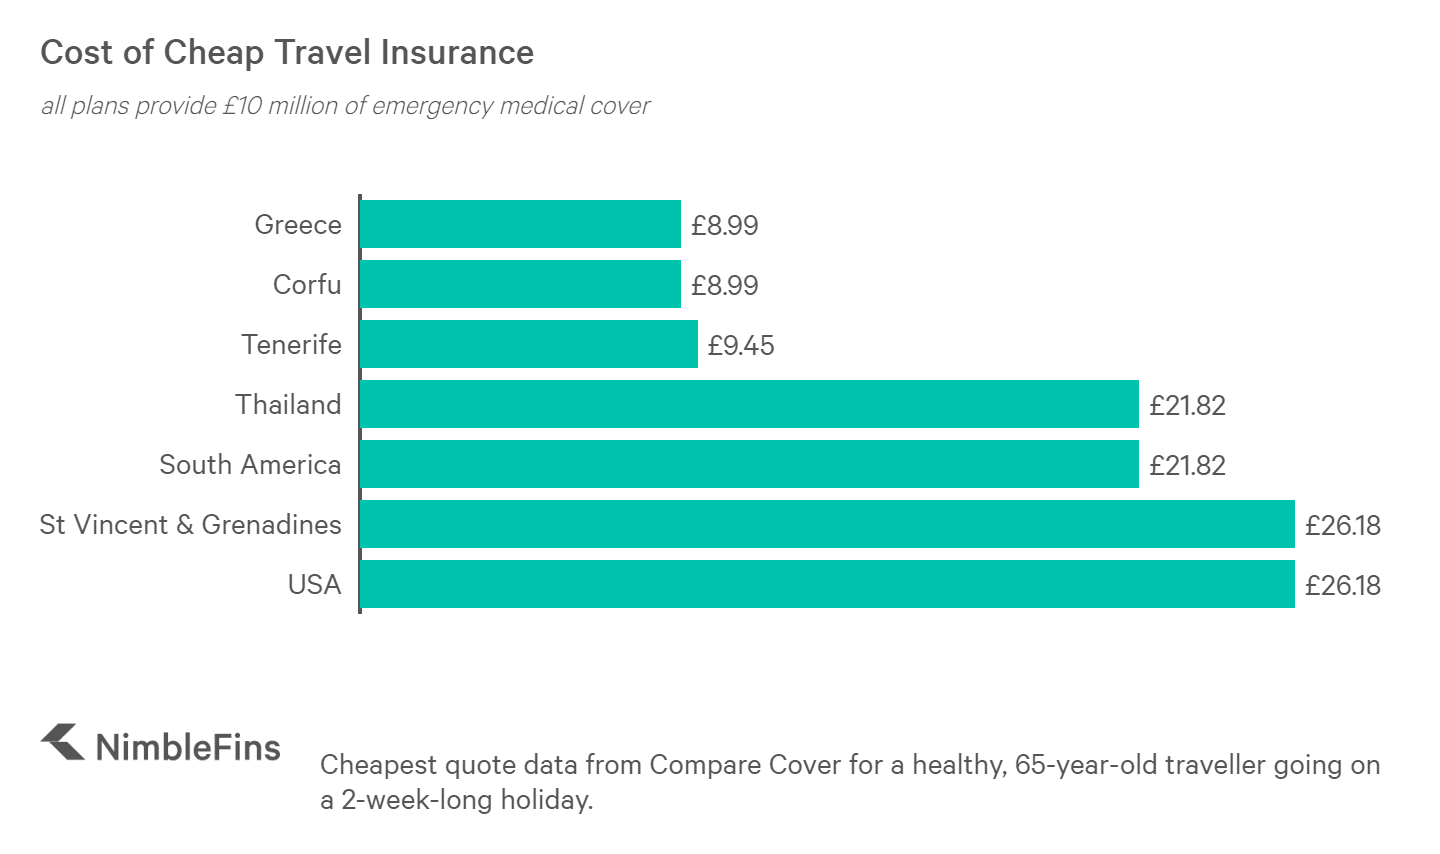 chart showing the cost of the cheapest travel insurance to Greece, Corfu, Tenerife, Thailand, South American, St. Vincent & Grenadines and USA